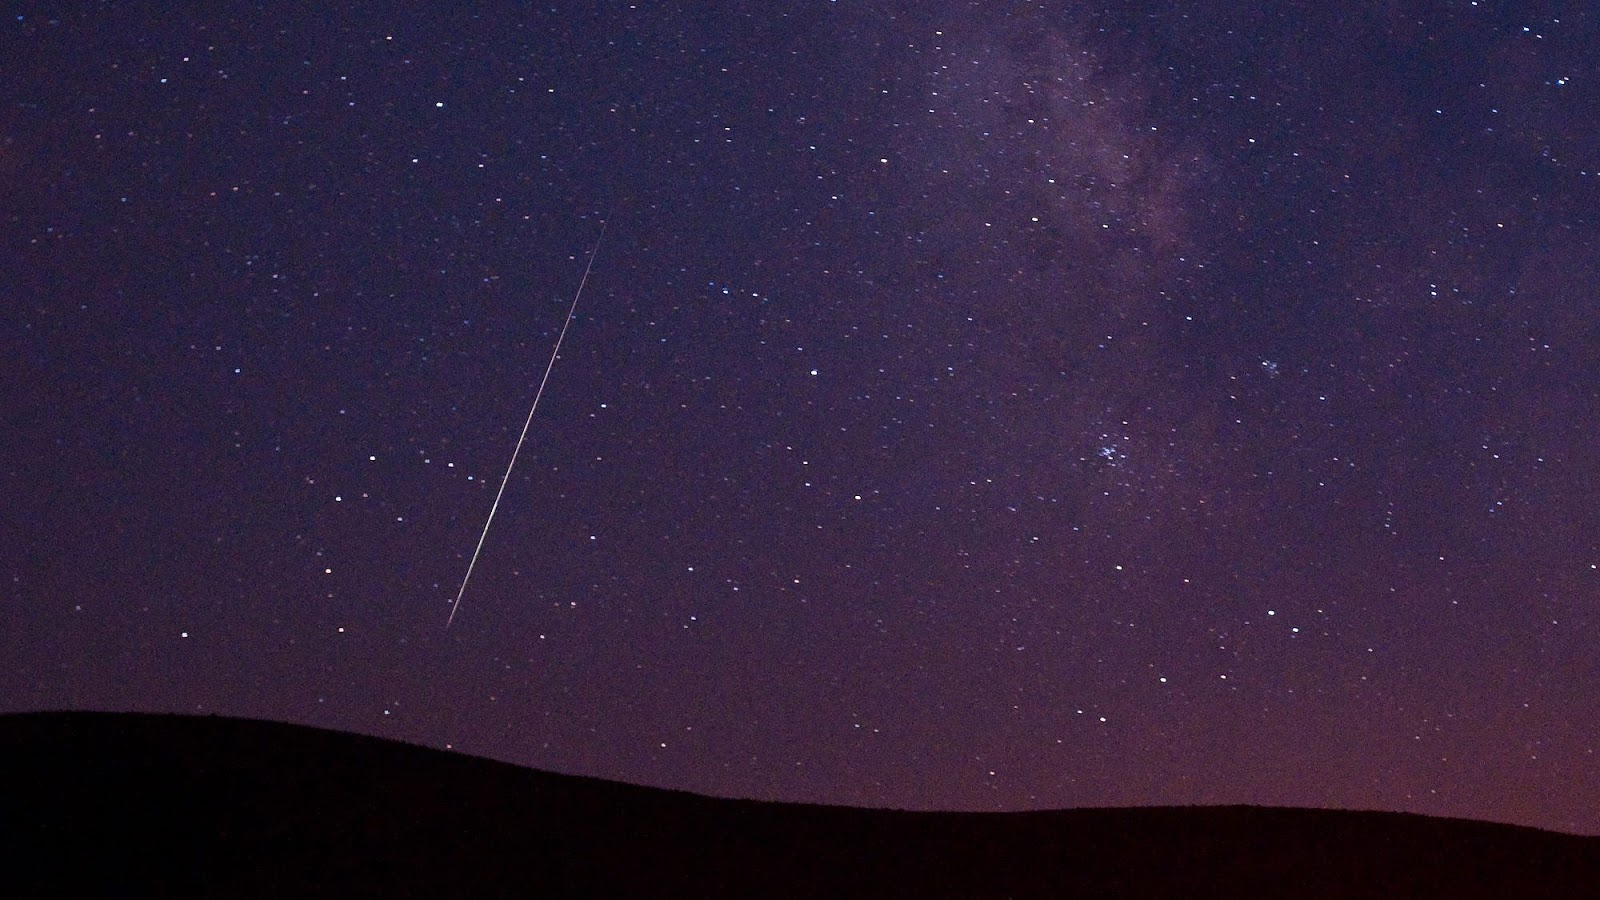 meteor-shower-shooting-star-2